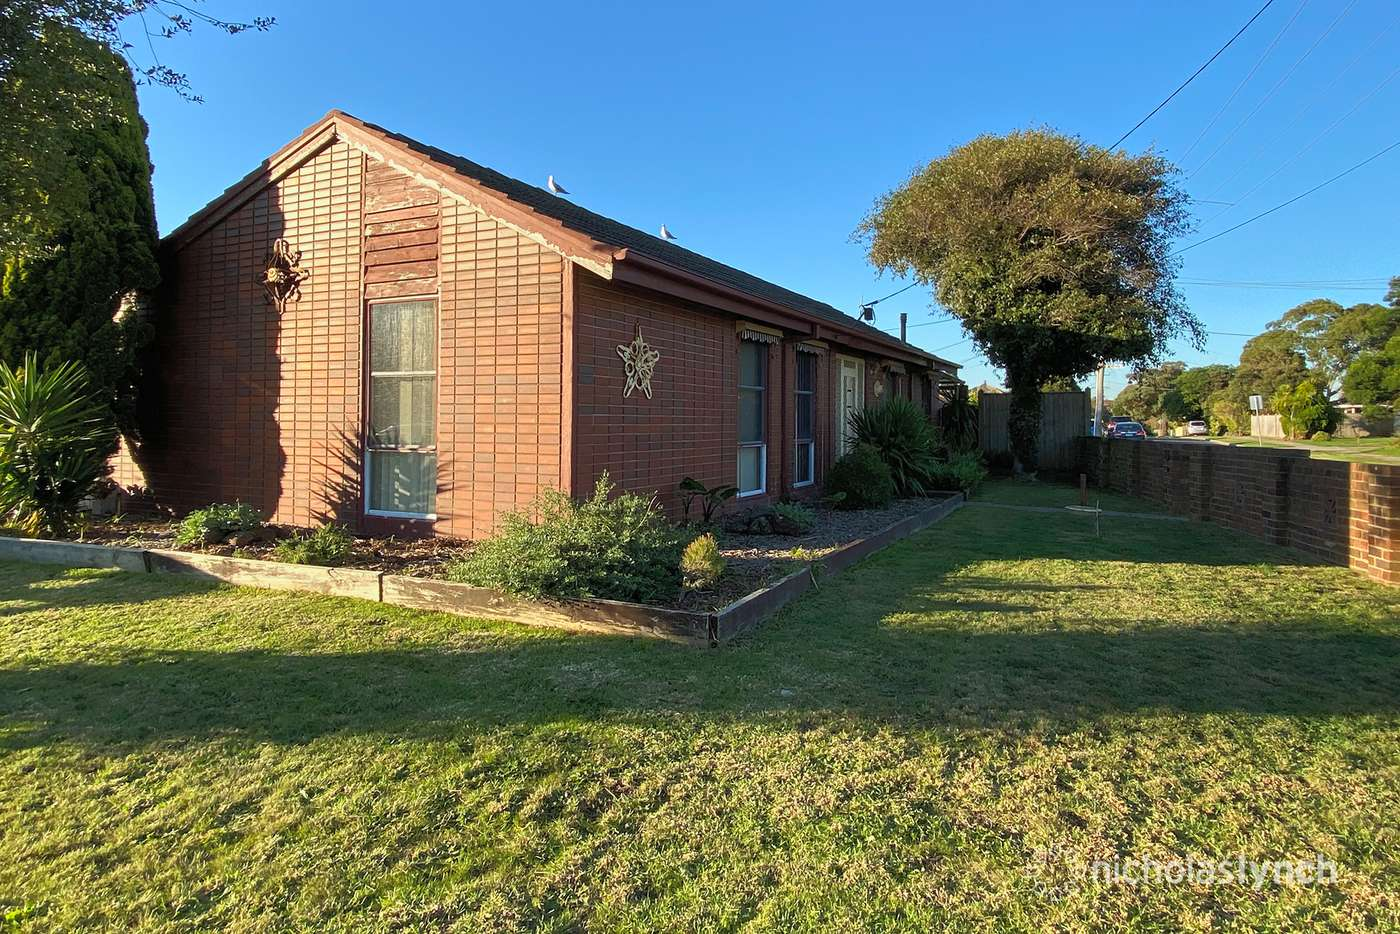 Main view of Homely house listing, 9 Hardy Street, Mornington VIC 3931